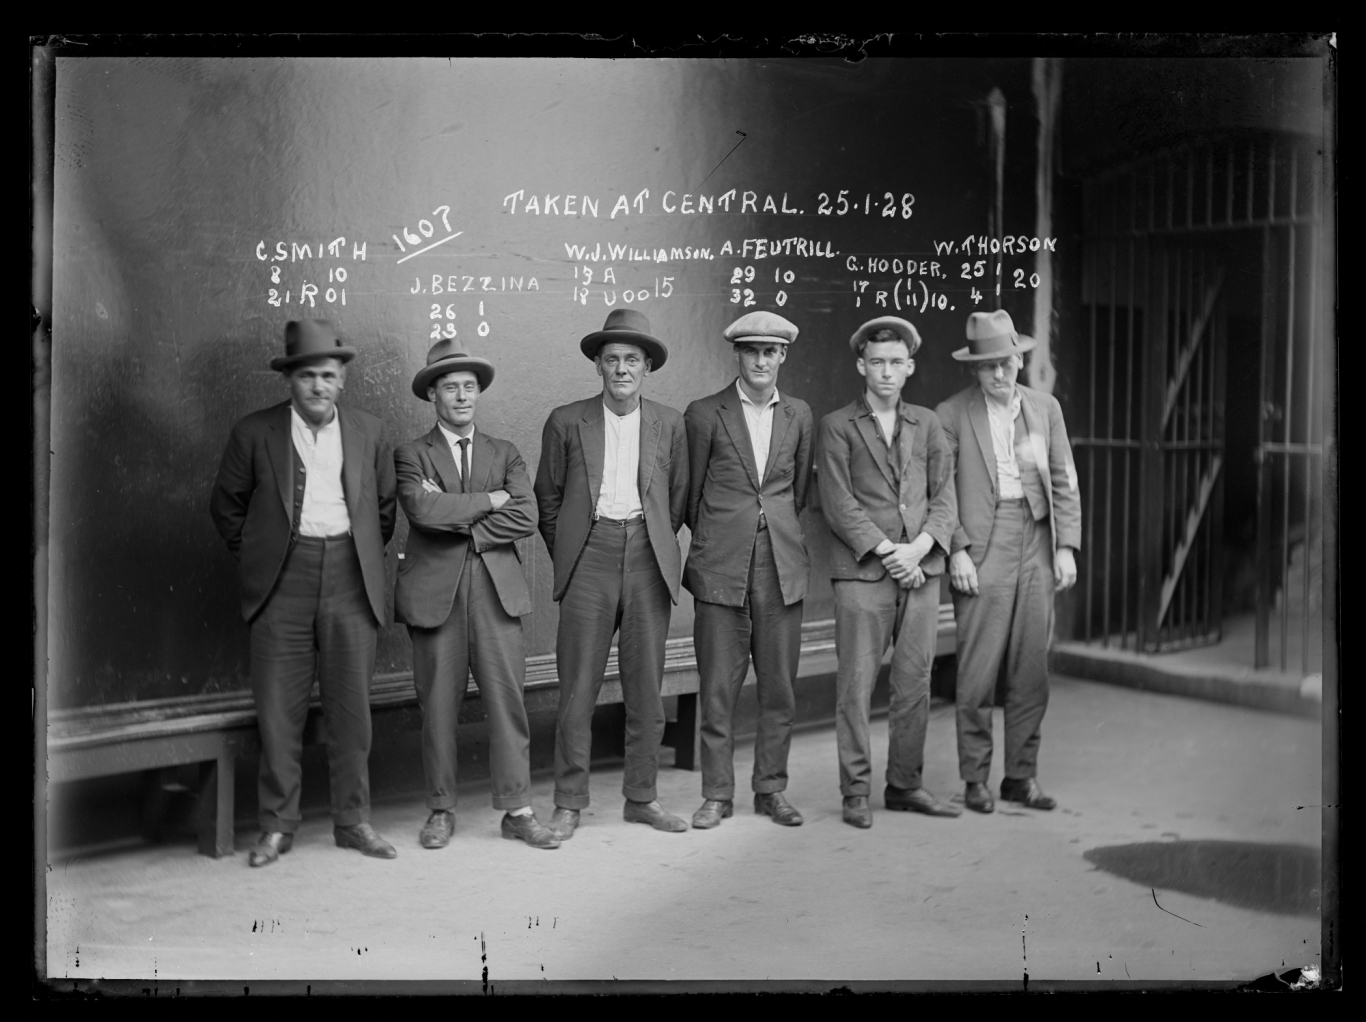 Black and white mugshot of six men standing in line, all with hats on.